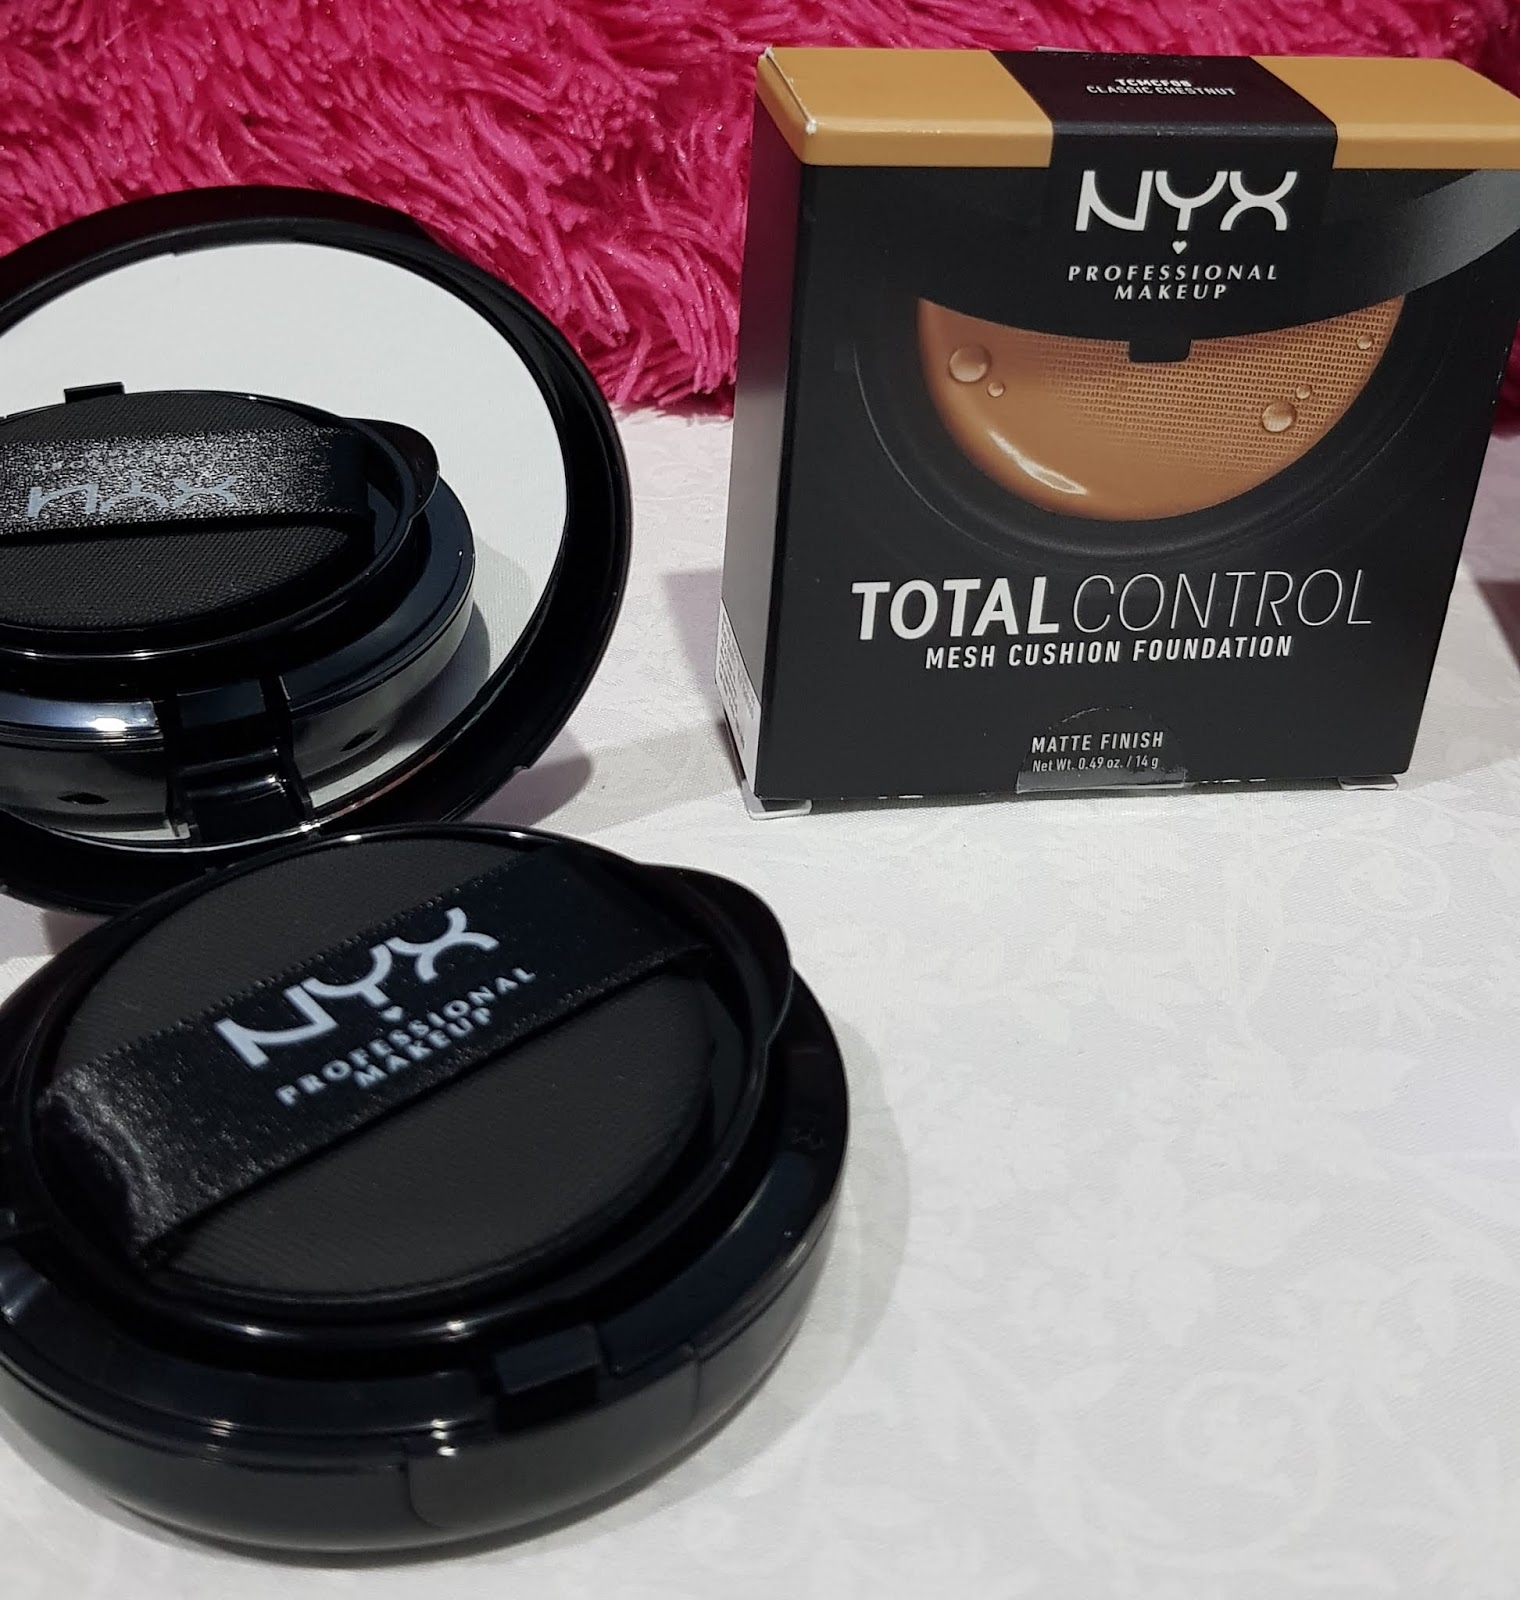 Review Nyx Total Control Mesh Cushion Foundation With Matte